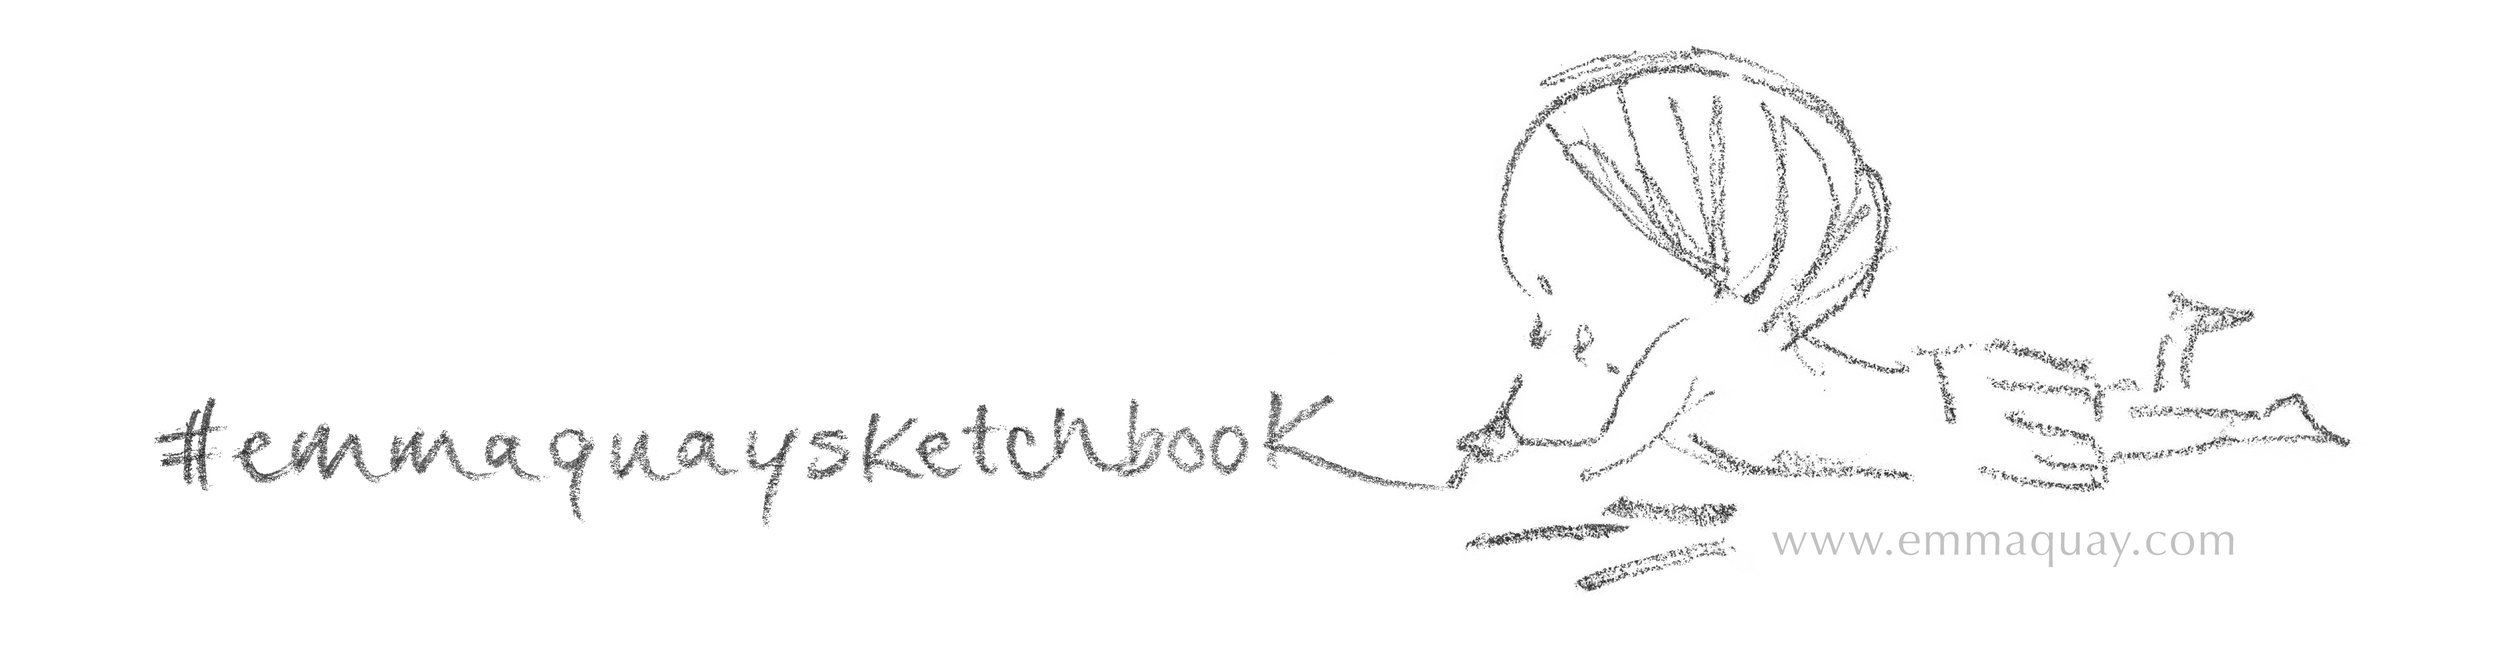 My Sketchbook - New page added to the website — sketches and illustrations on the go